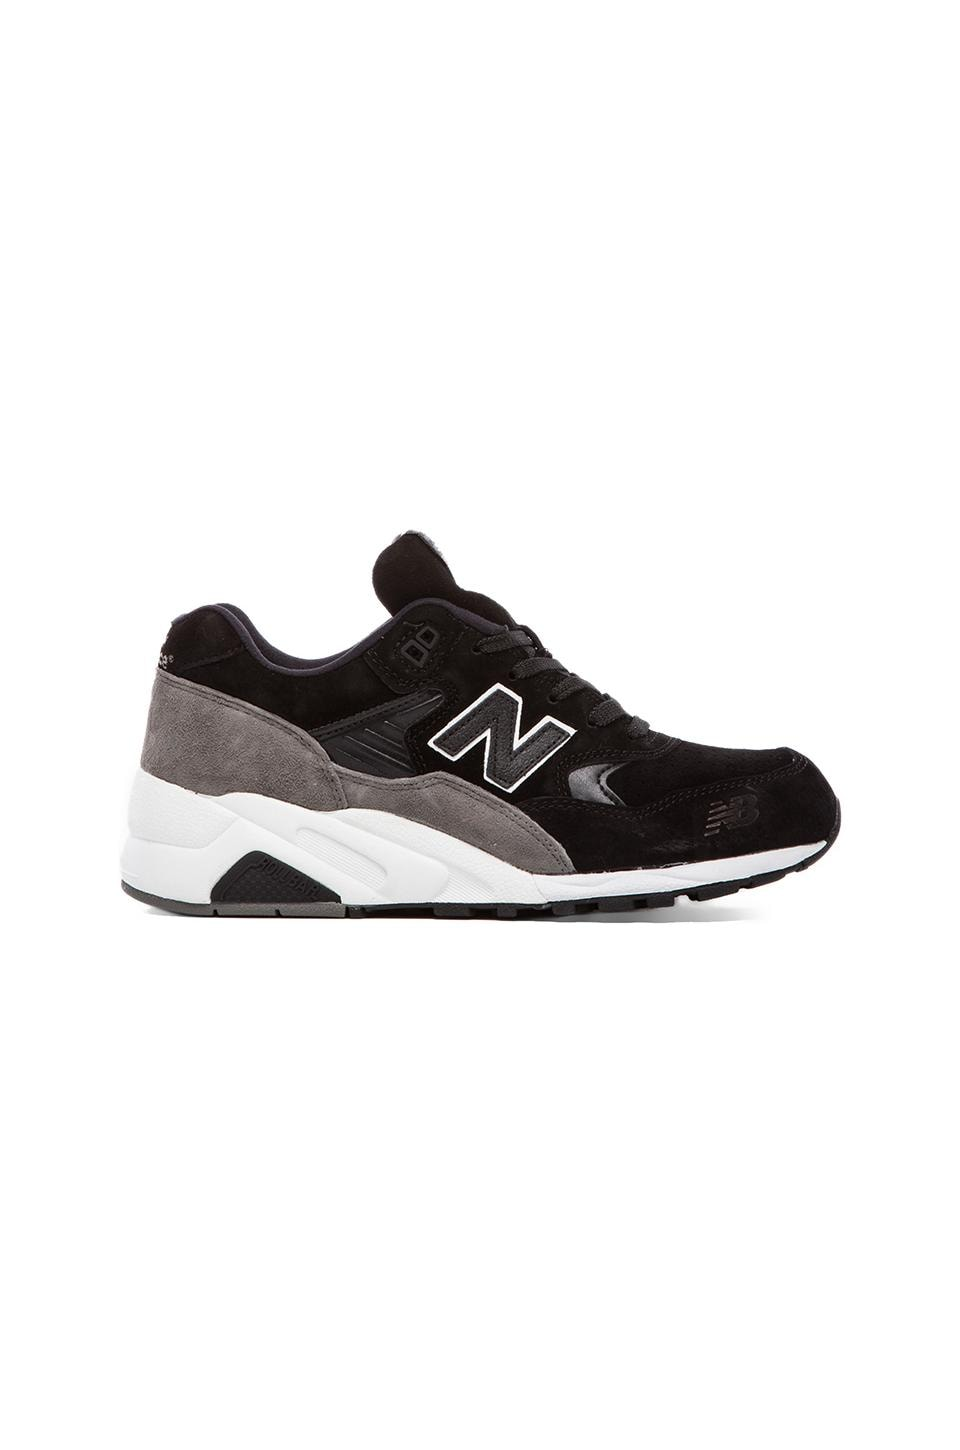 New Balance Made in the USA MT580 in Black & Grey